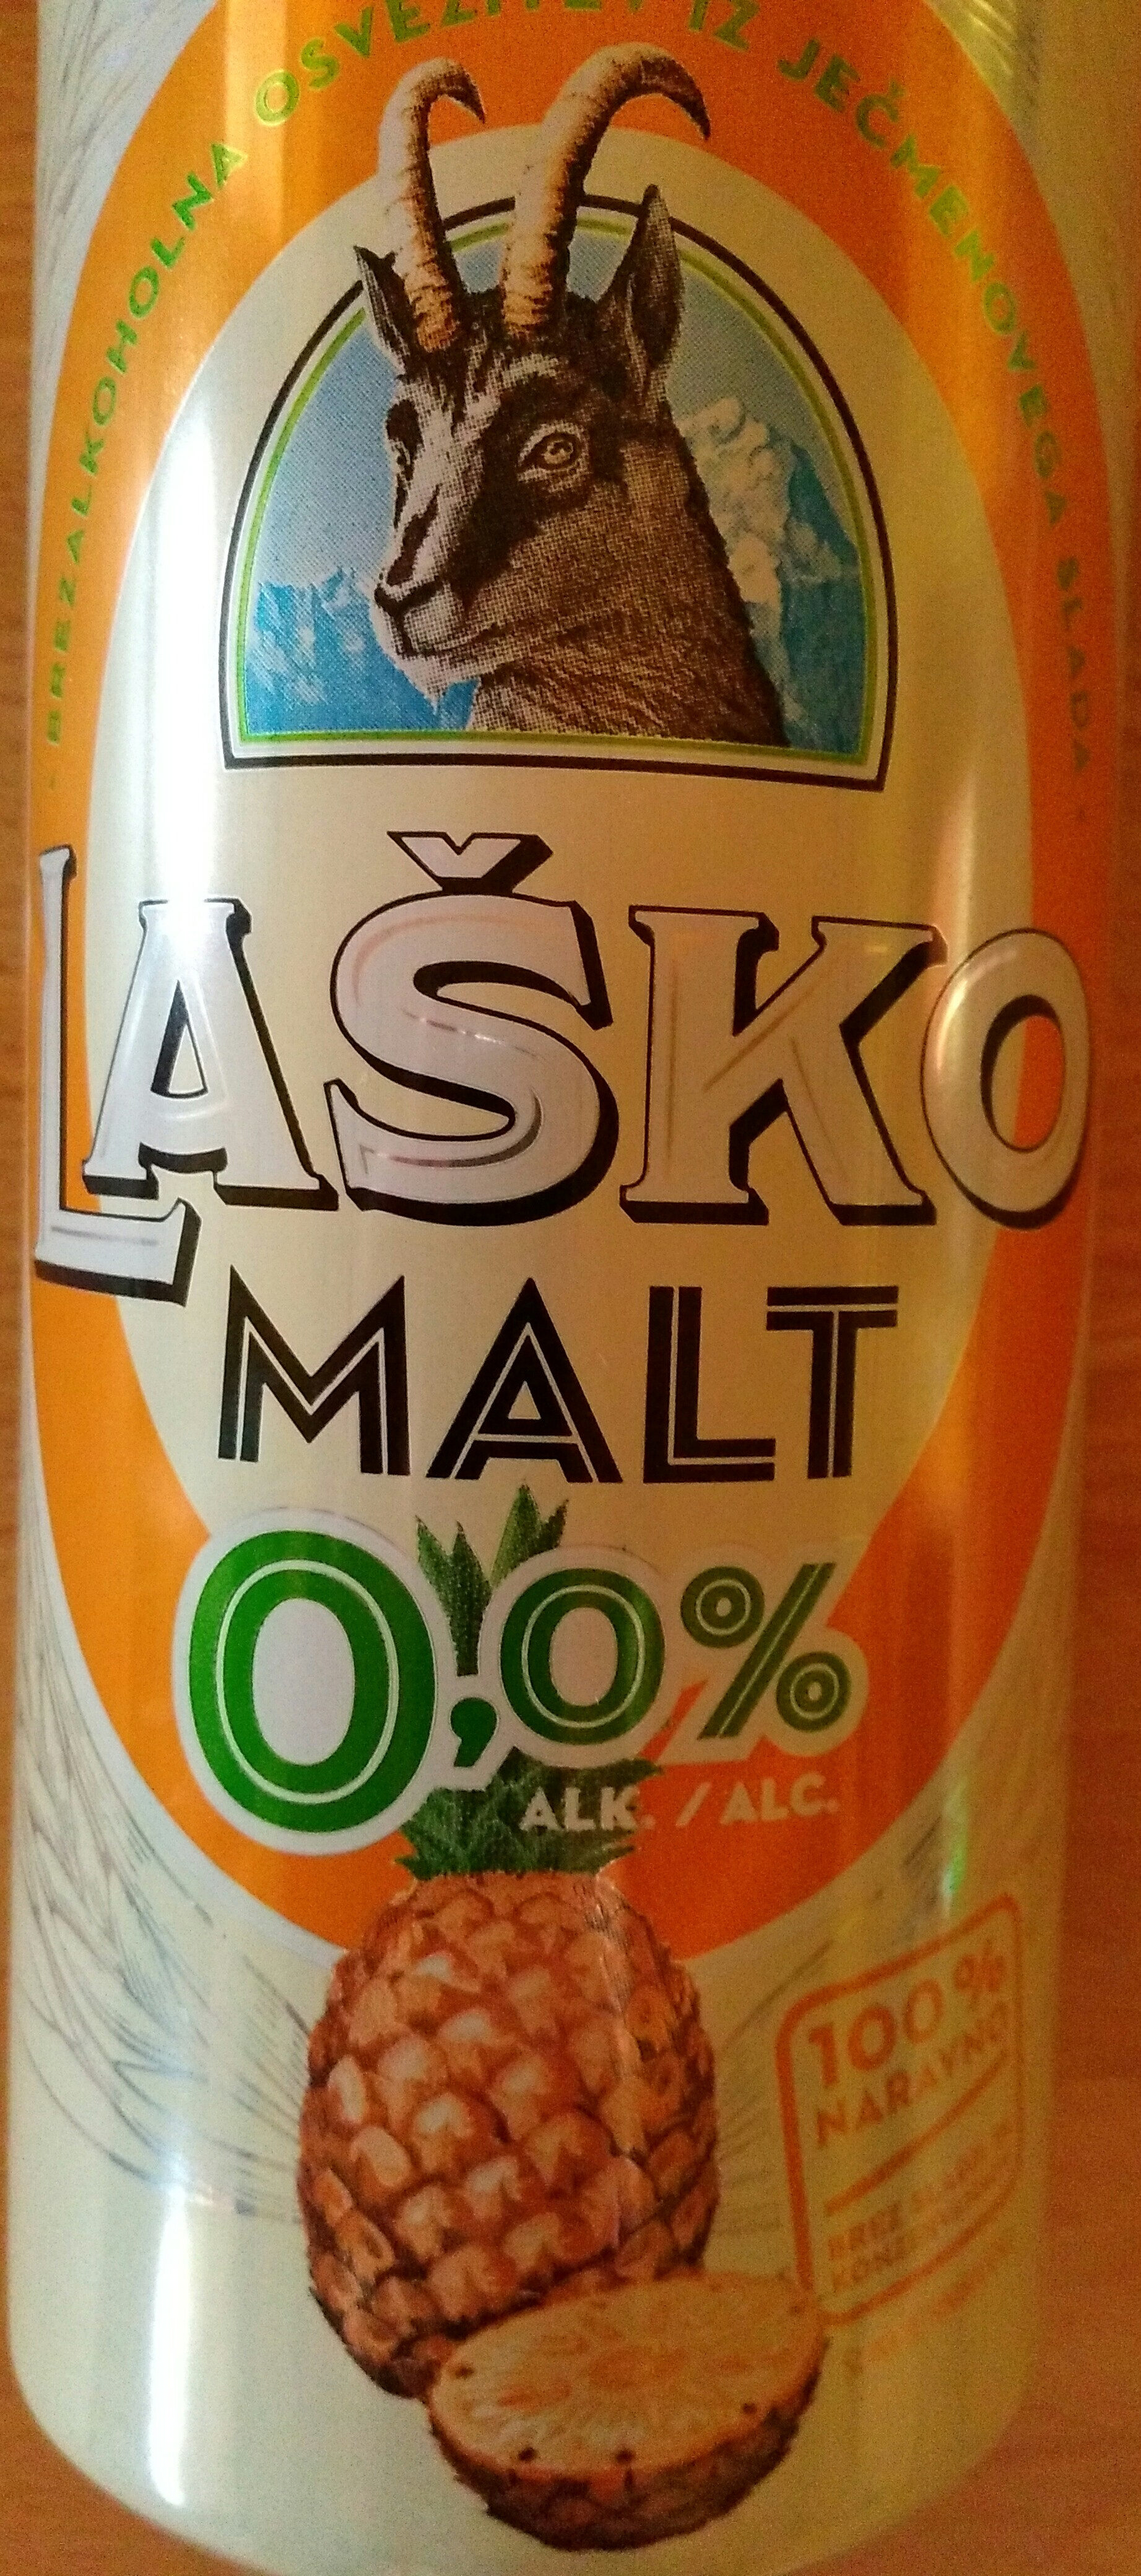 LAŠKO MALT ANANAS • PINEAPPLE - Product - sl